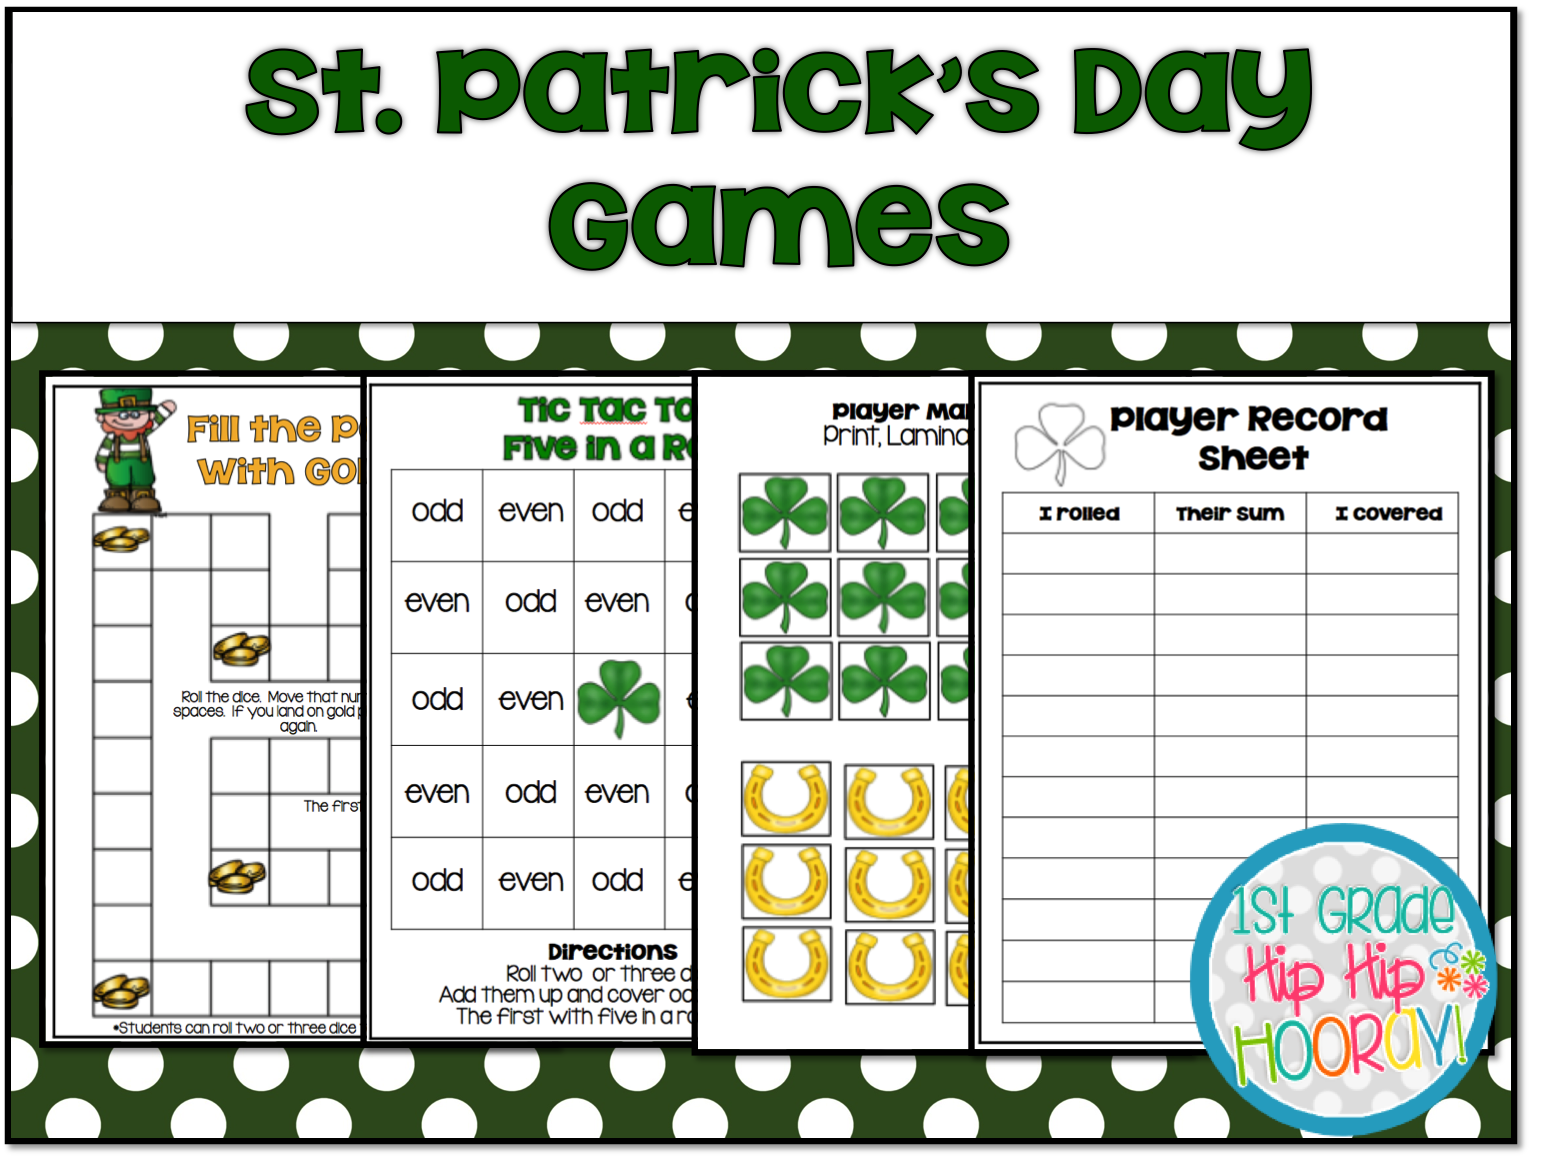 1st Grade Hip Hip Hooray Free St Patrick S Day Games